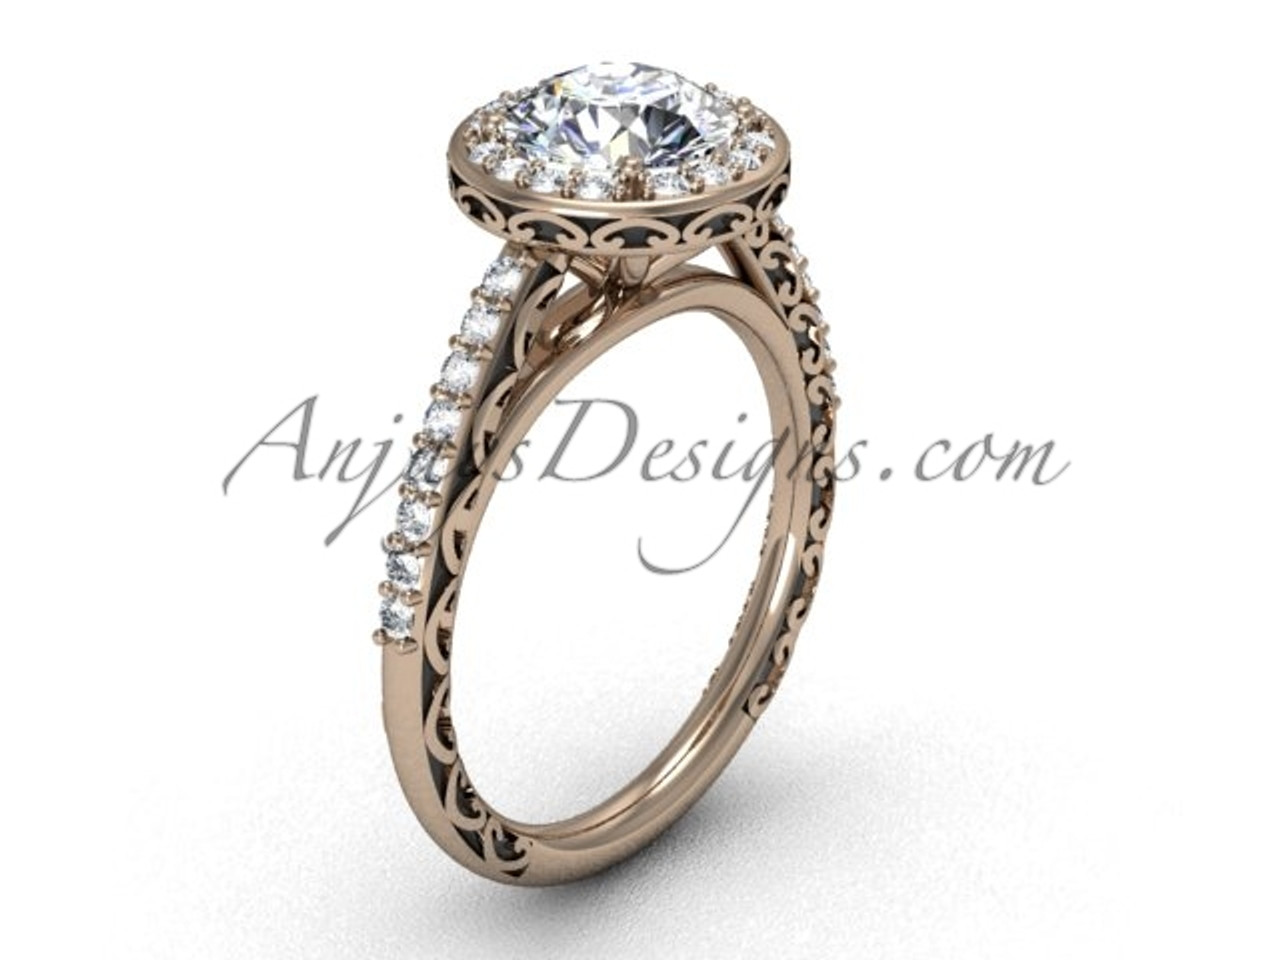 Beautiful Wedding Rings.Beautiful Engagement Rings 14k Rose Gold Unique Vintage Halo Bridal Ring Sgt615